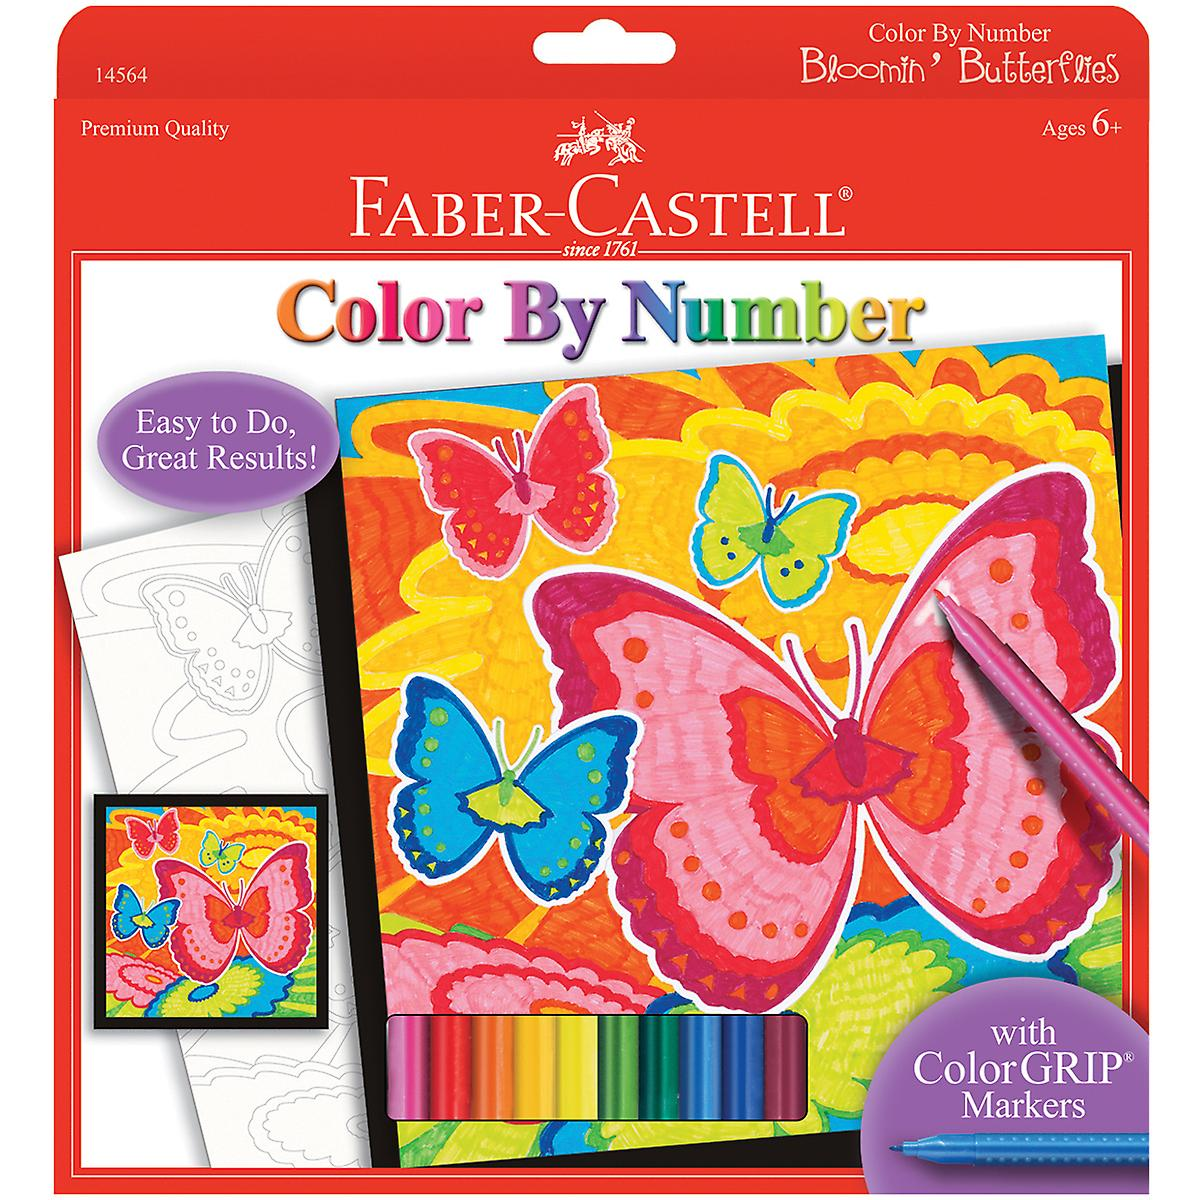 Color By Number Kit Bloomin' Butterflies 145 64